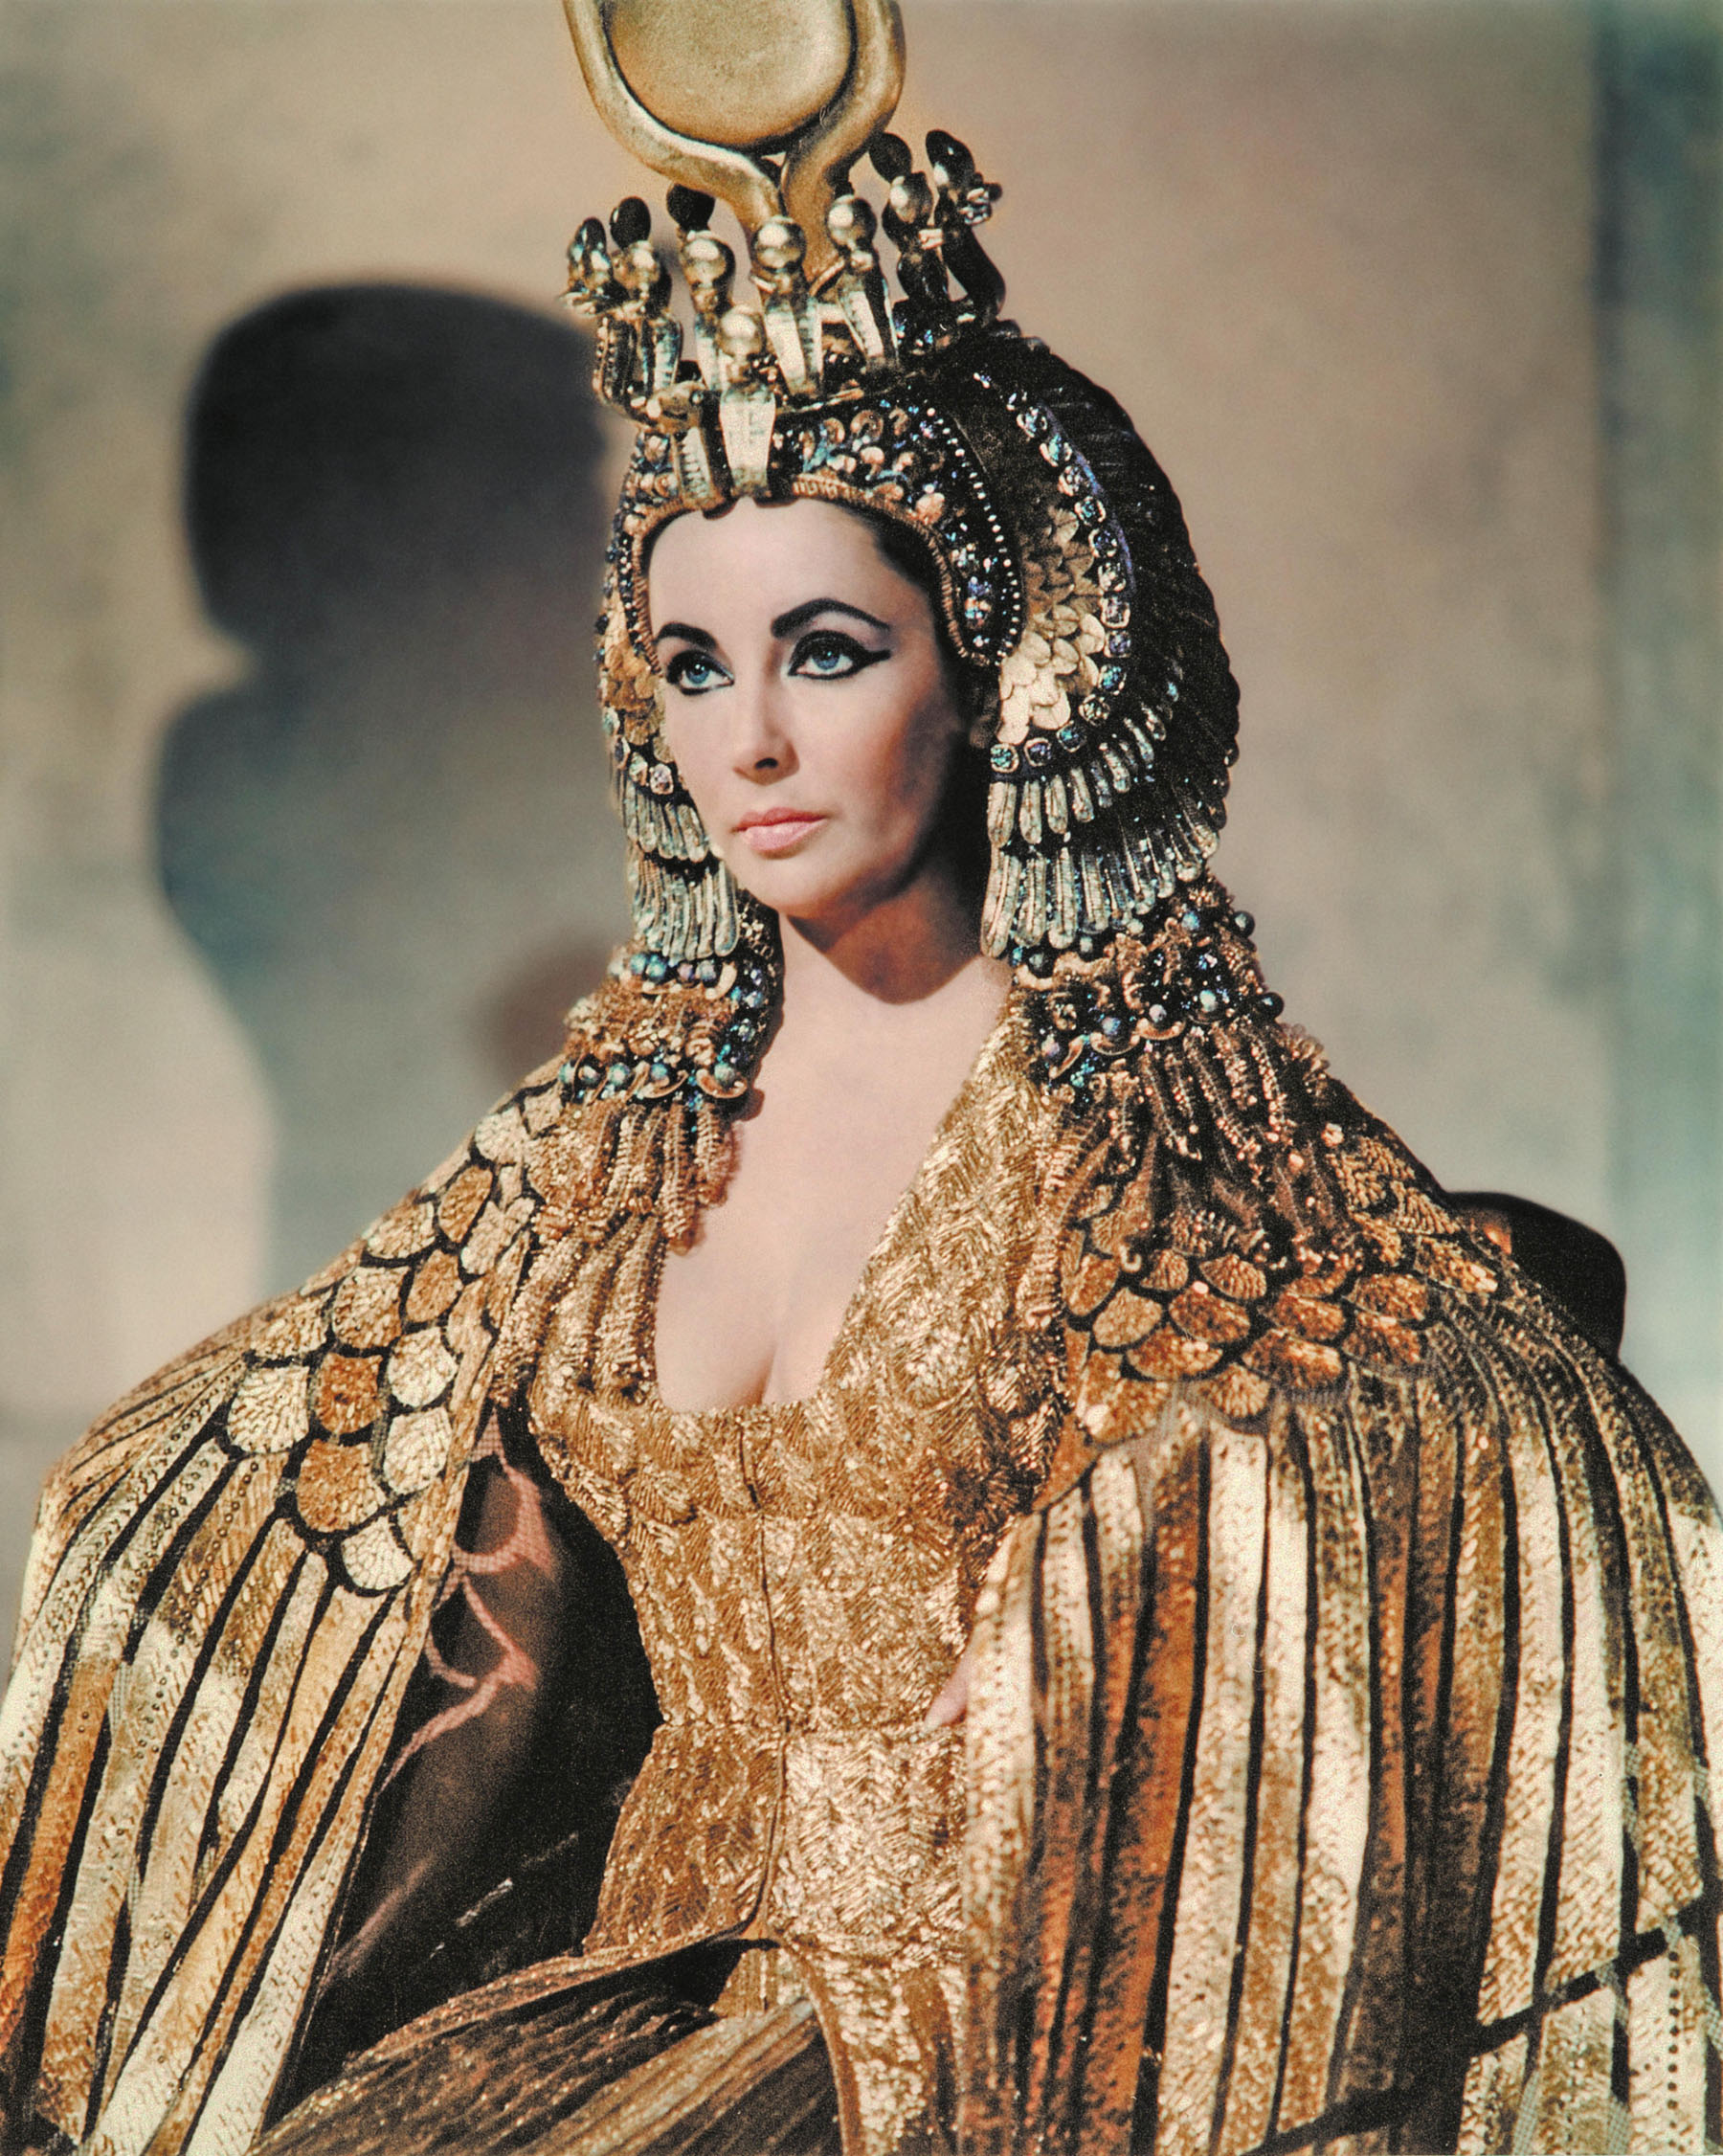 Elizabeth-Taylor-in-Cleopatra-1963-©20th-Century-Fox-The-Kobal-Collection